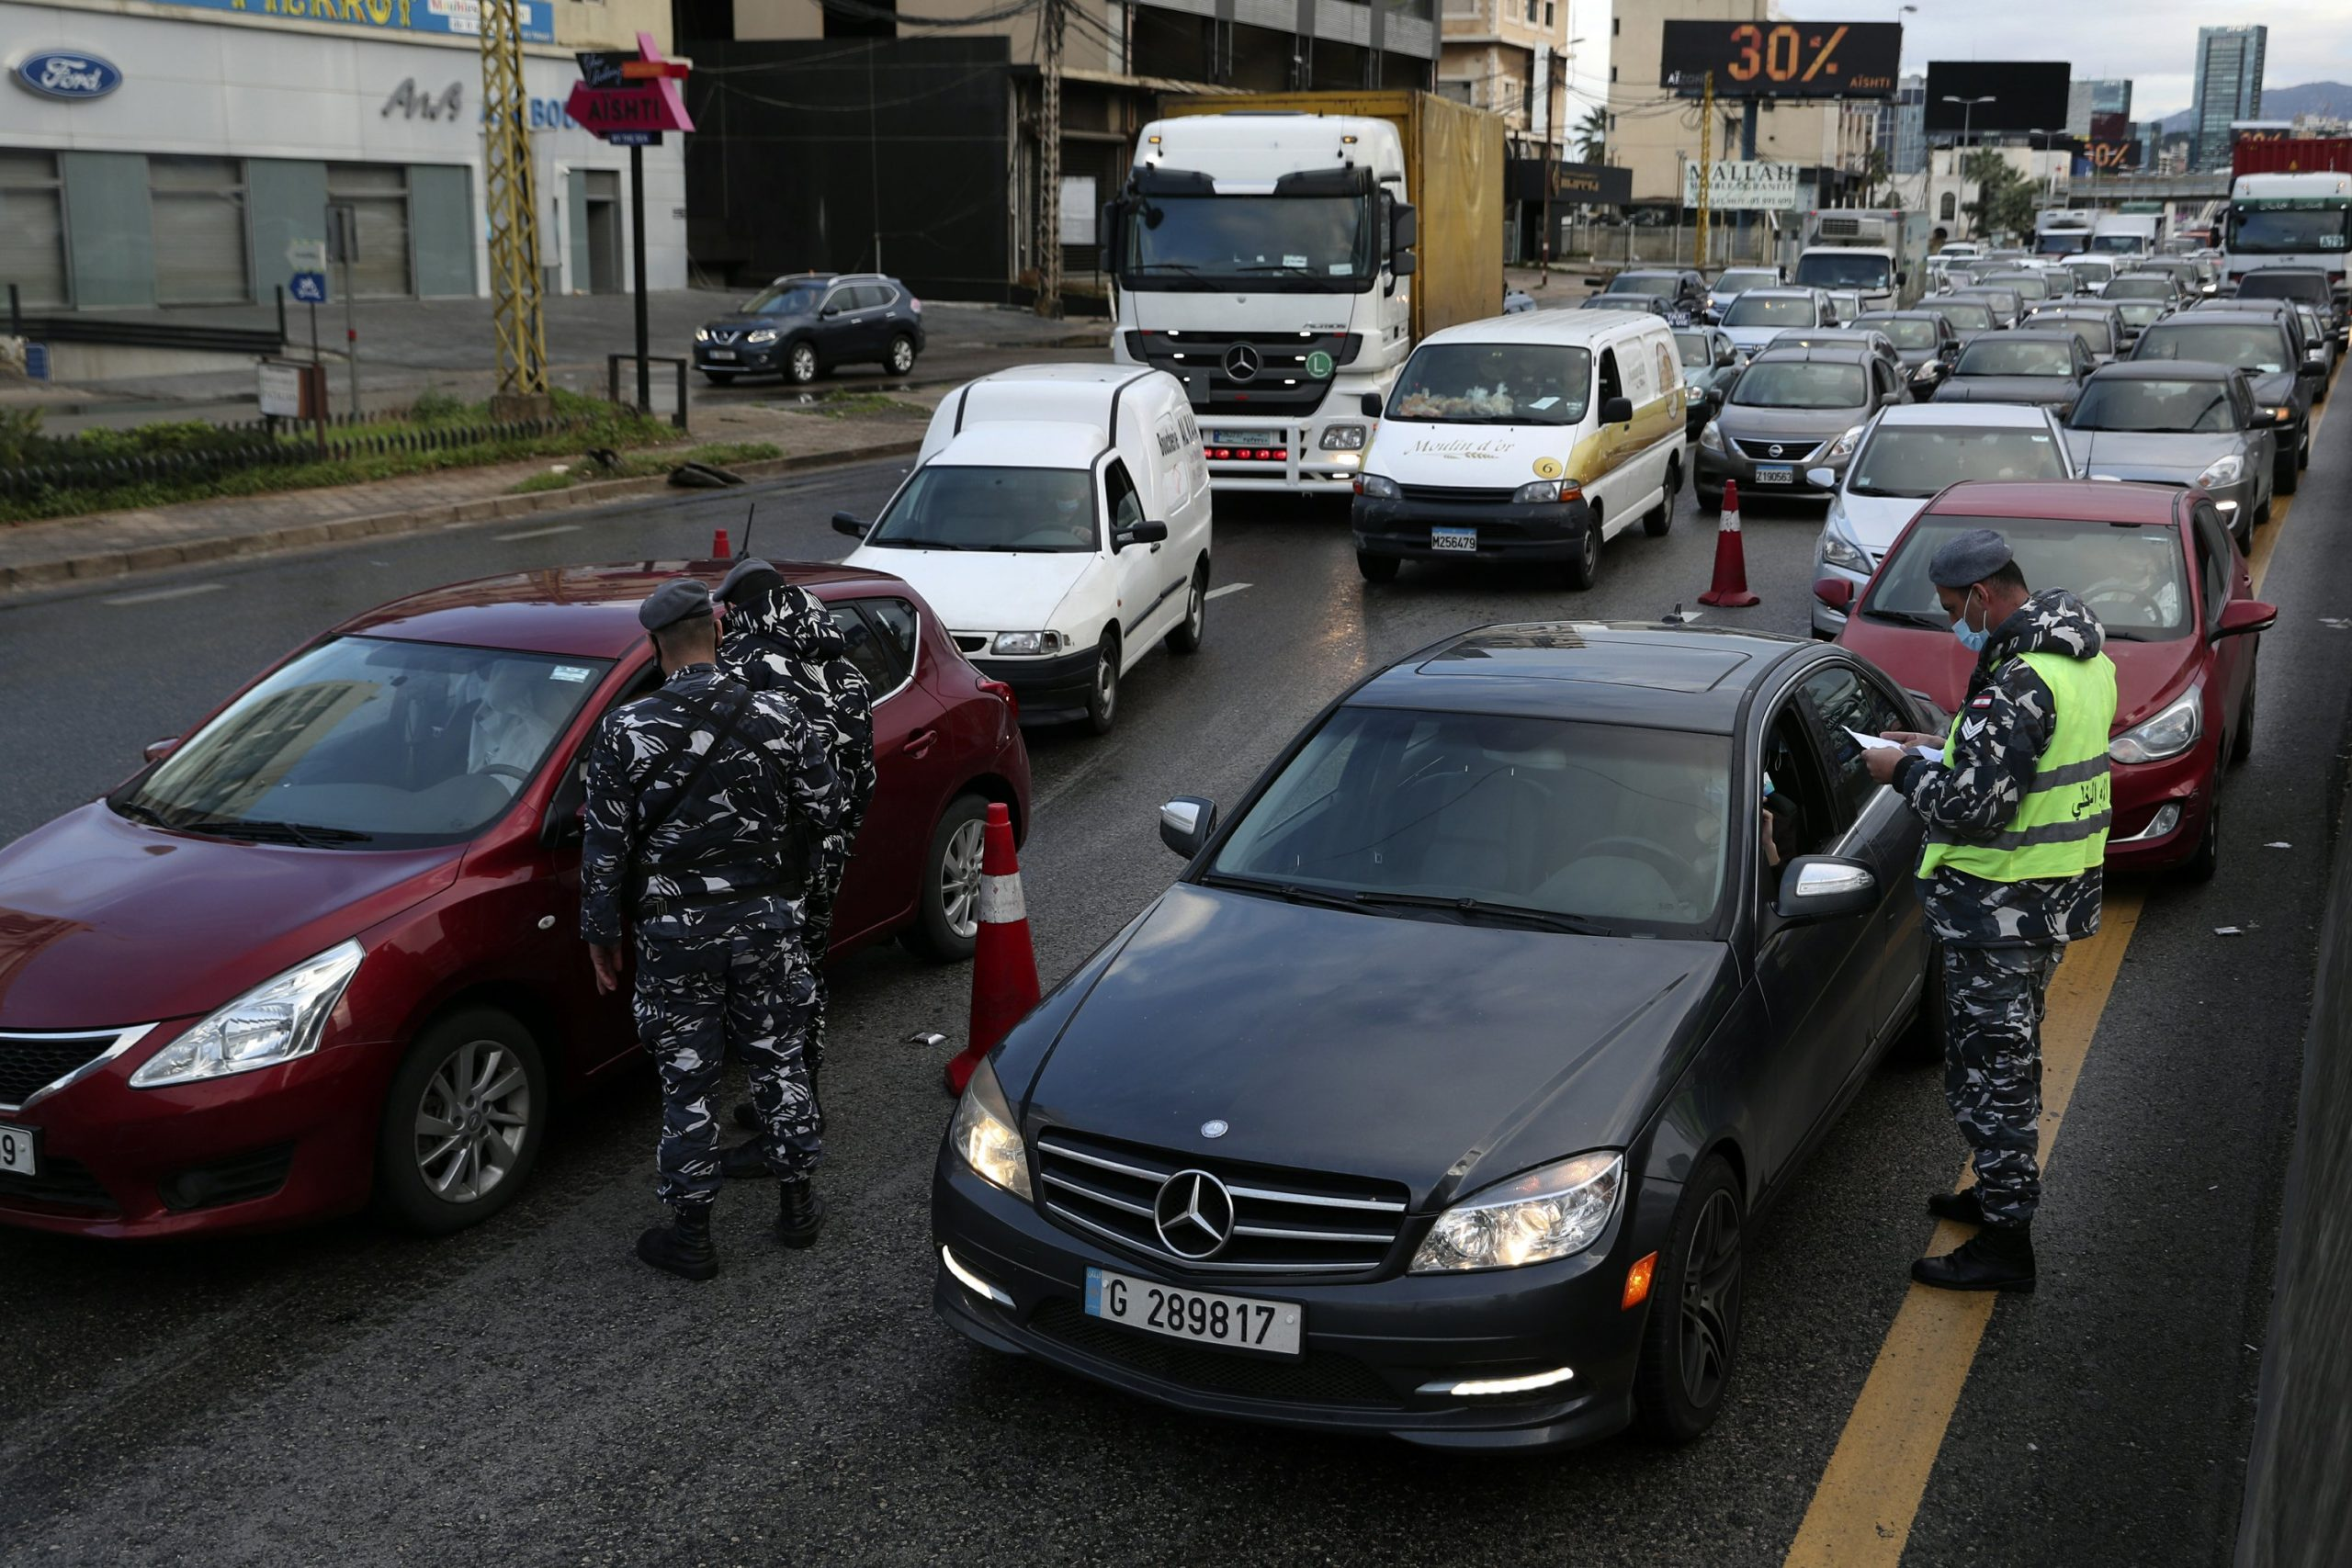 Lebanon begins an all-day curfew as the virus spreads out of control